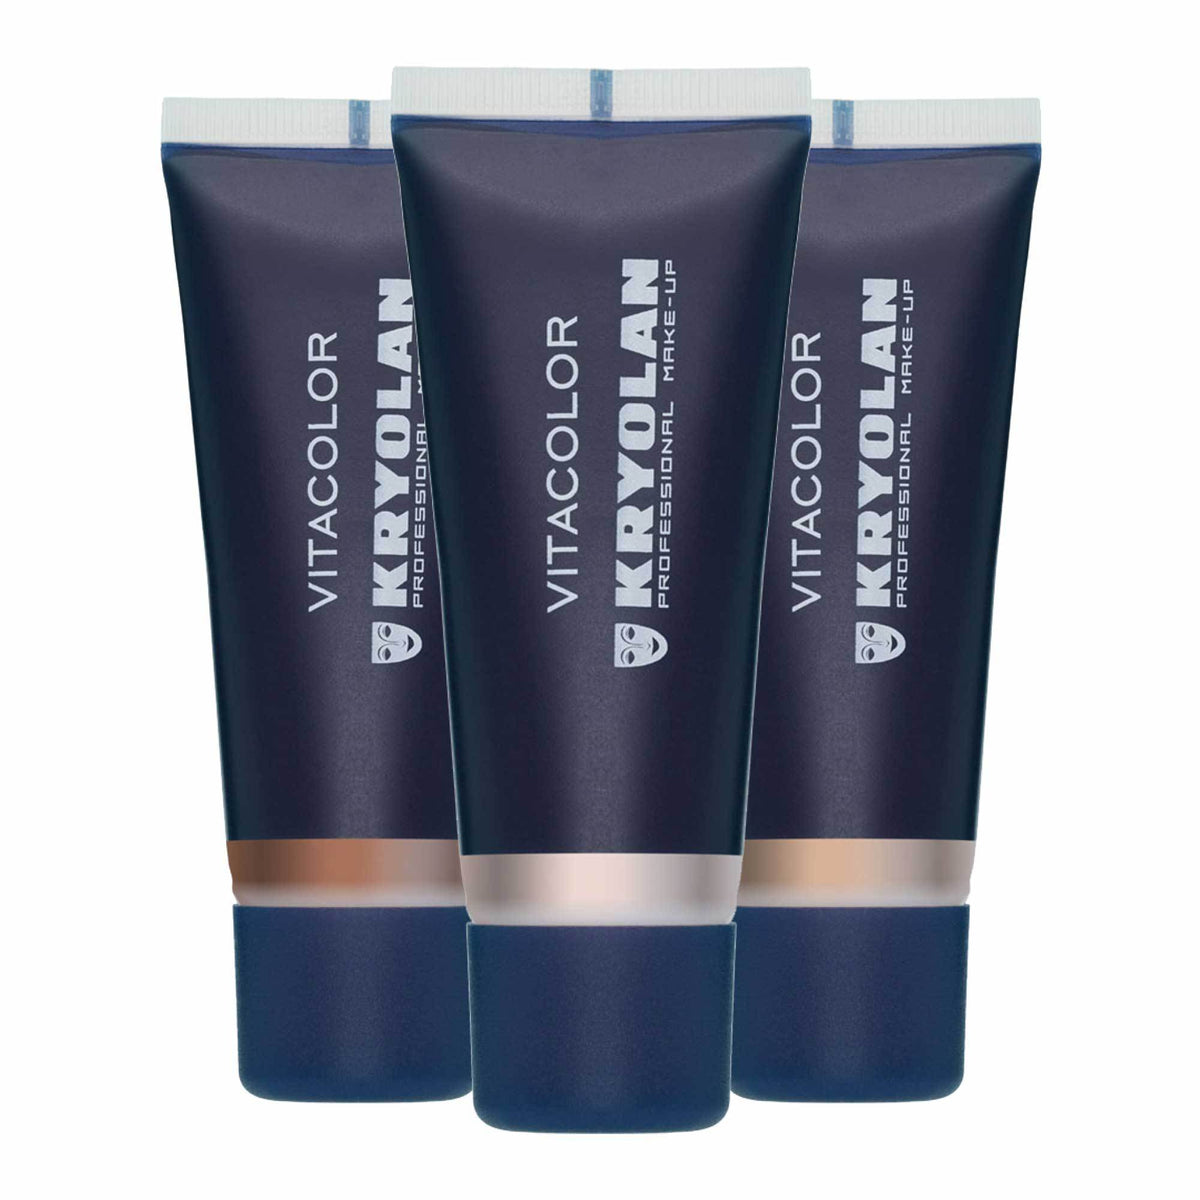 Kryolan Vitacolor - Liquid Cream Foundation